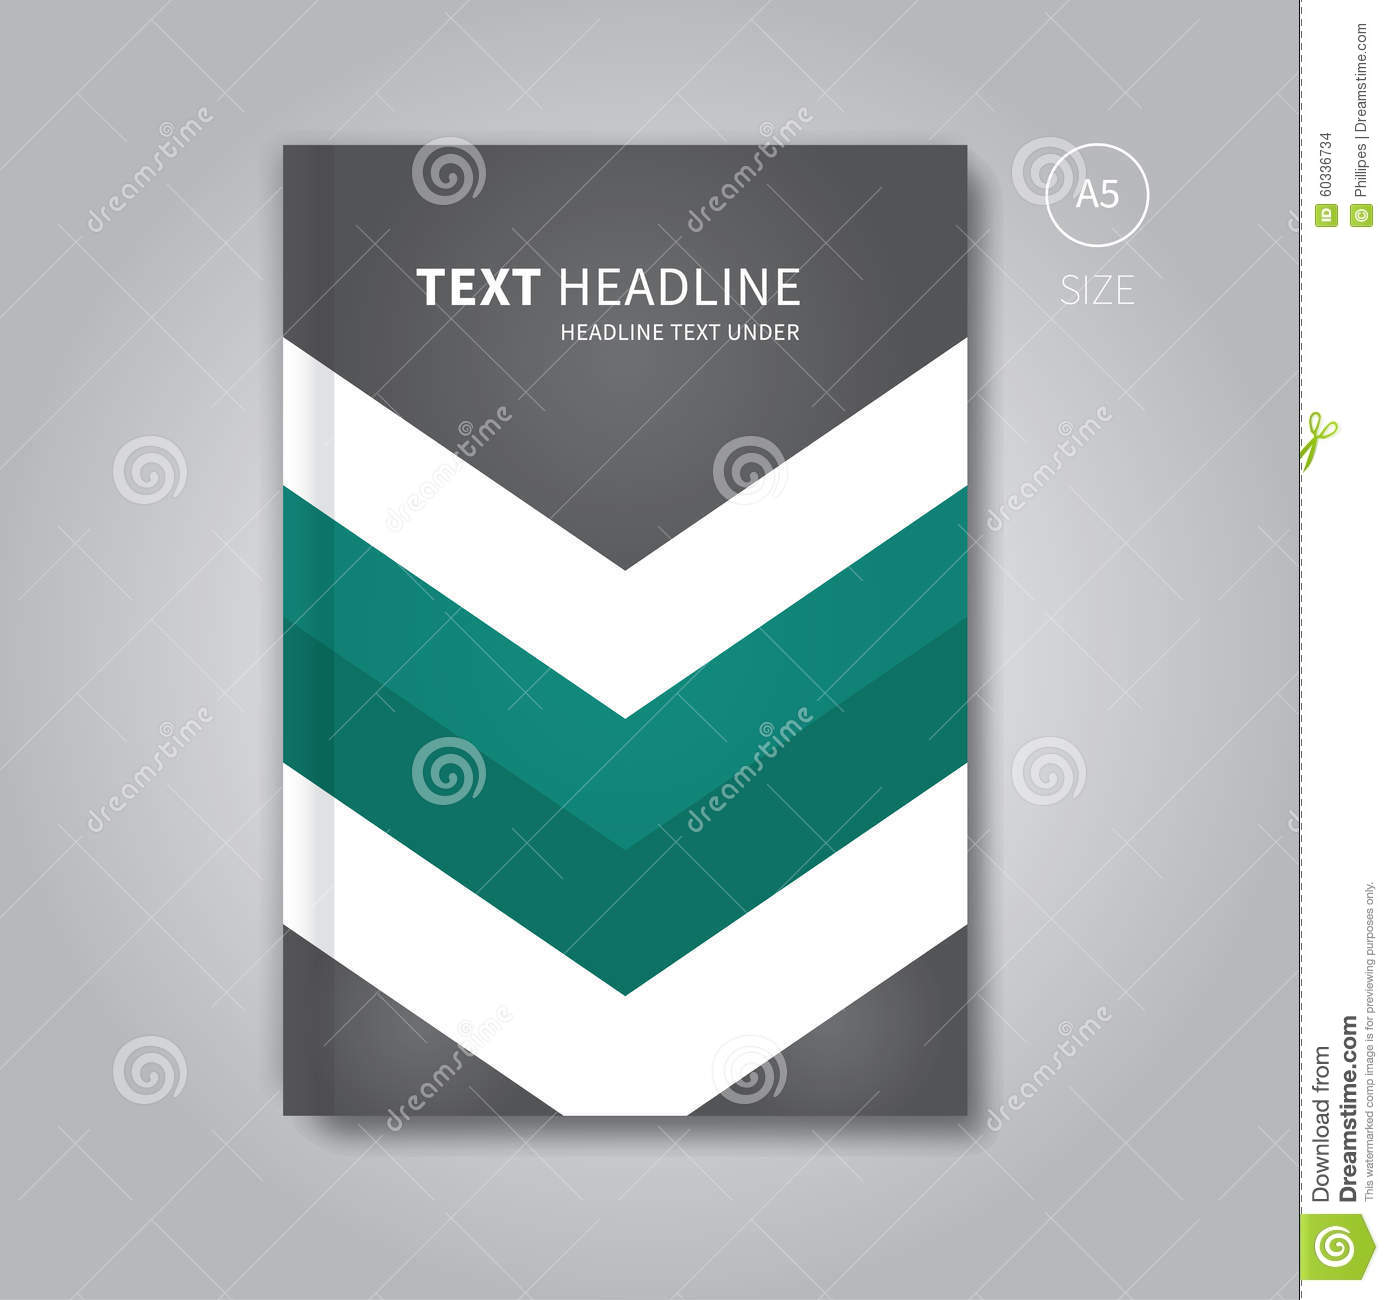 Book Cover Design Photo : Business book design front cover stock vector